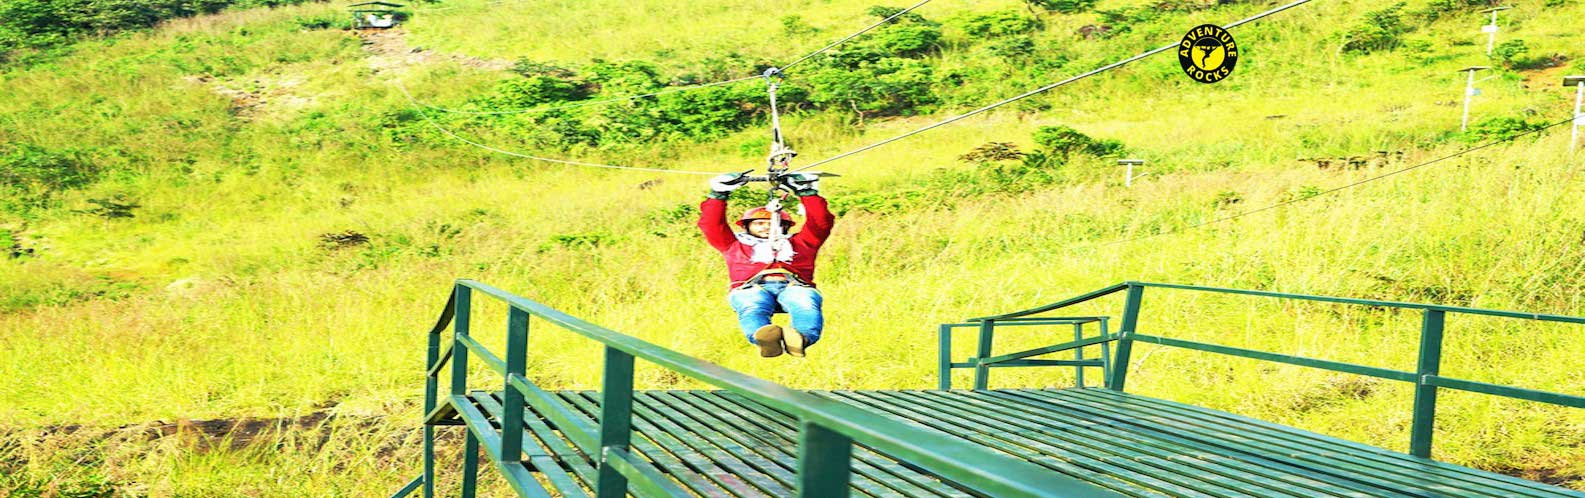 Zip Line Manufacturers in Itanagar